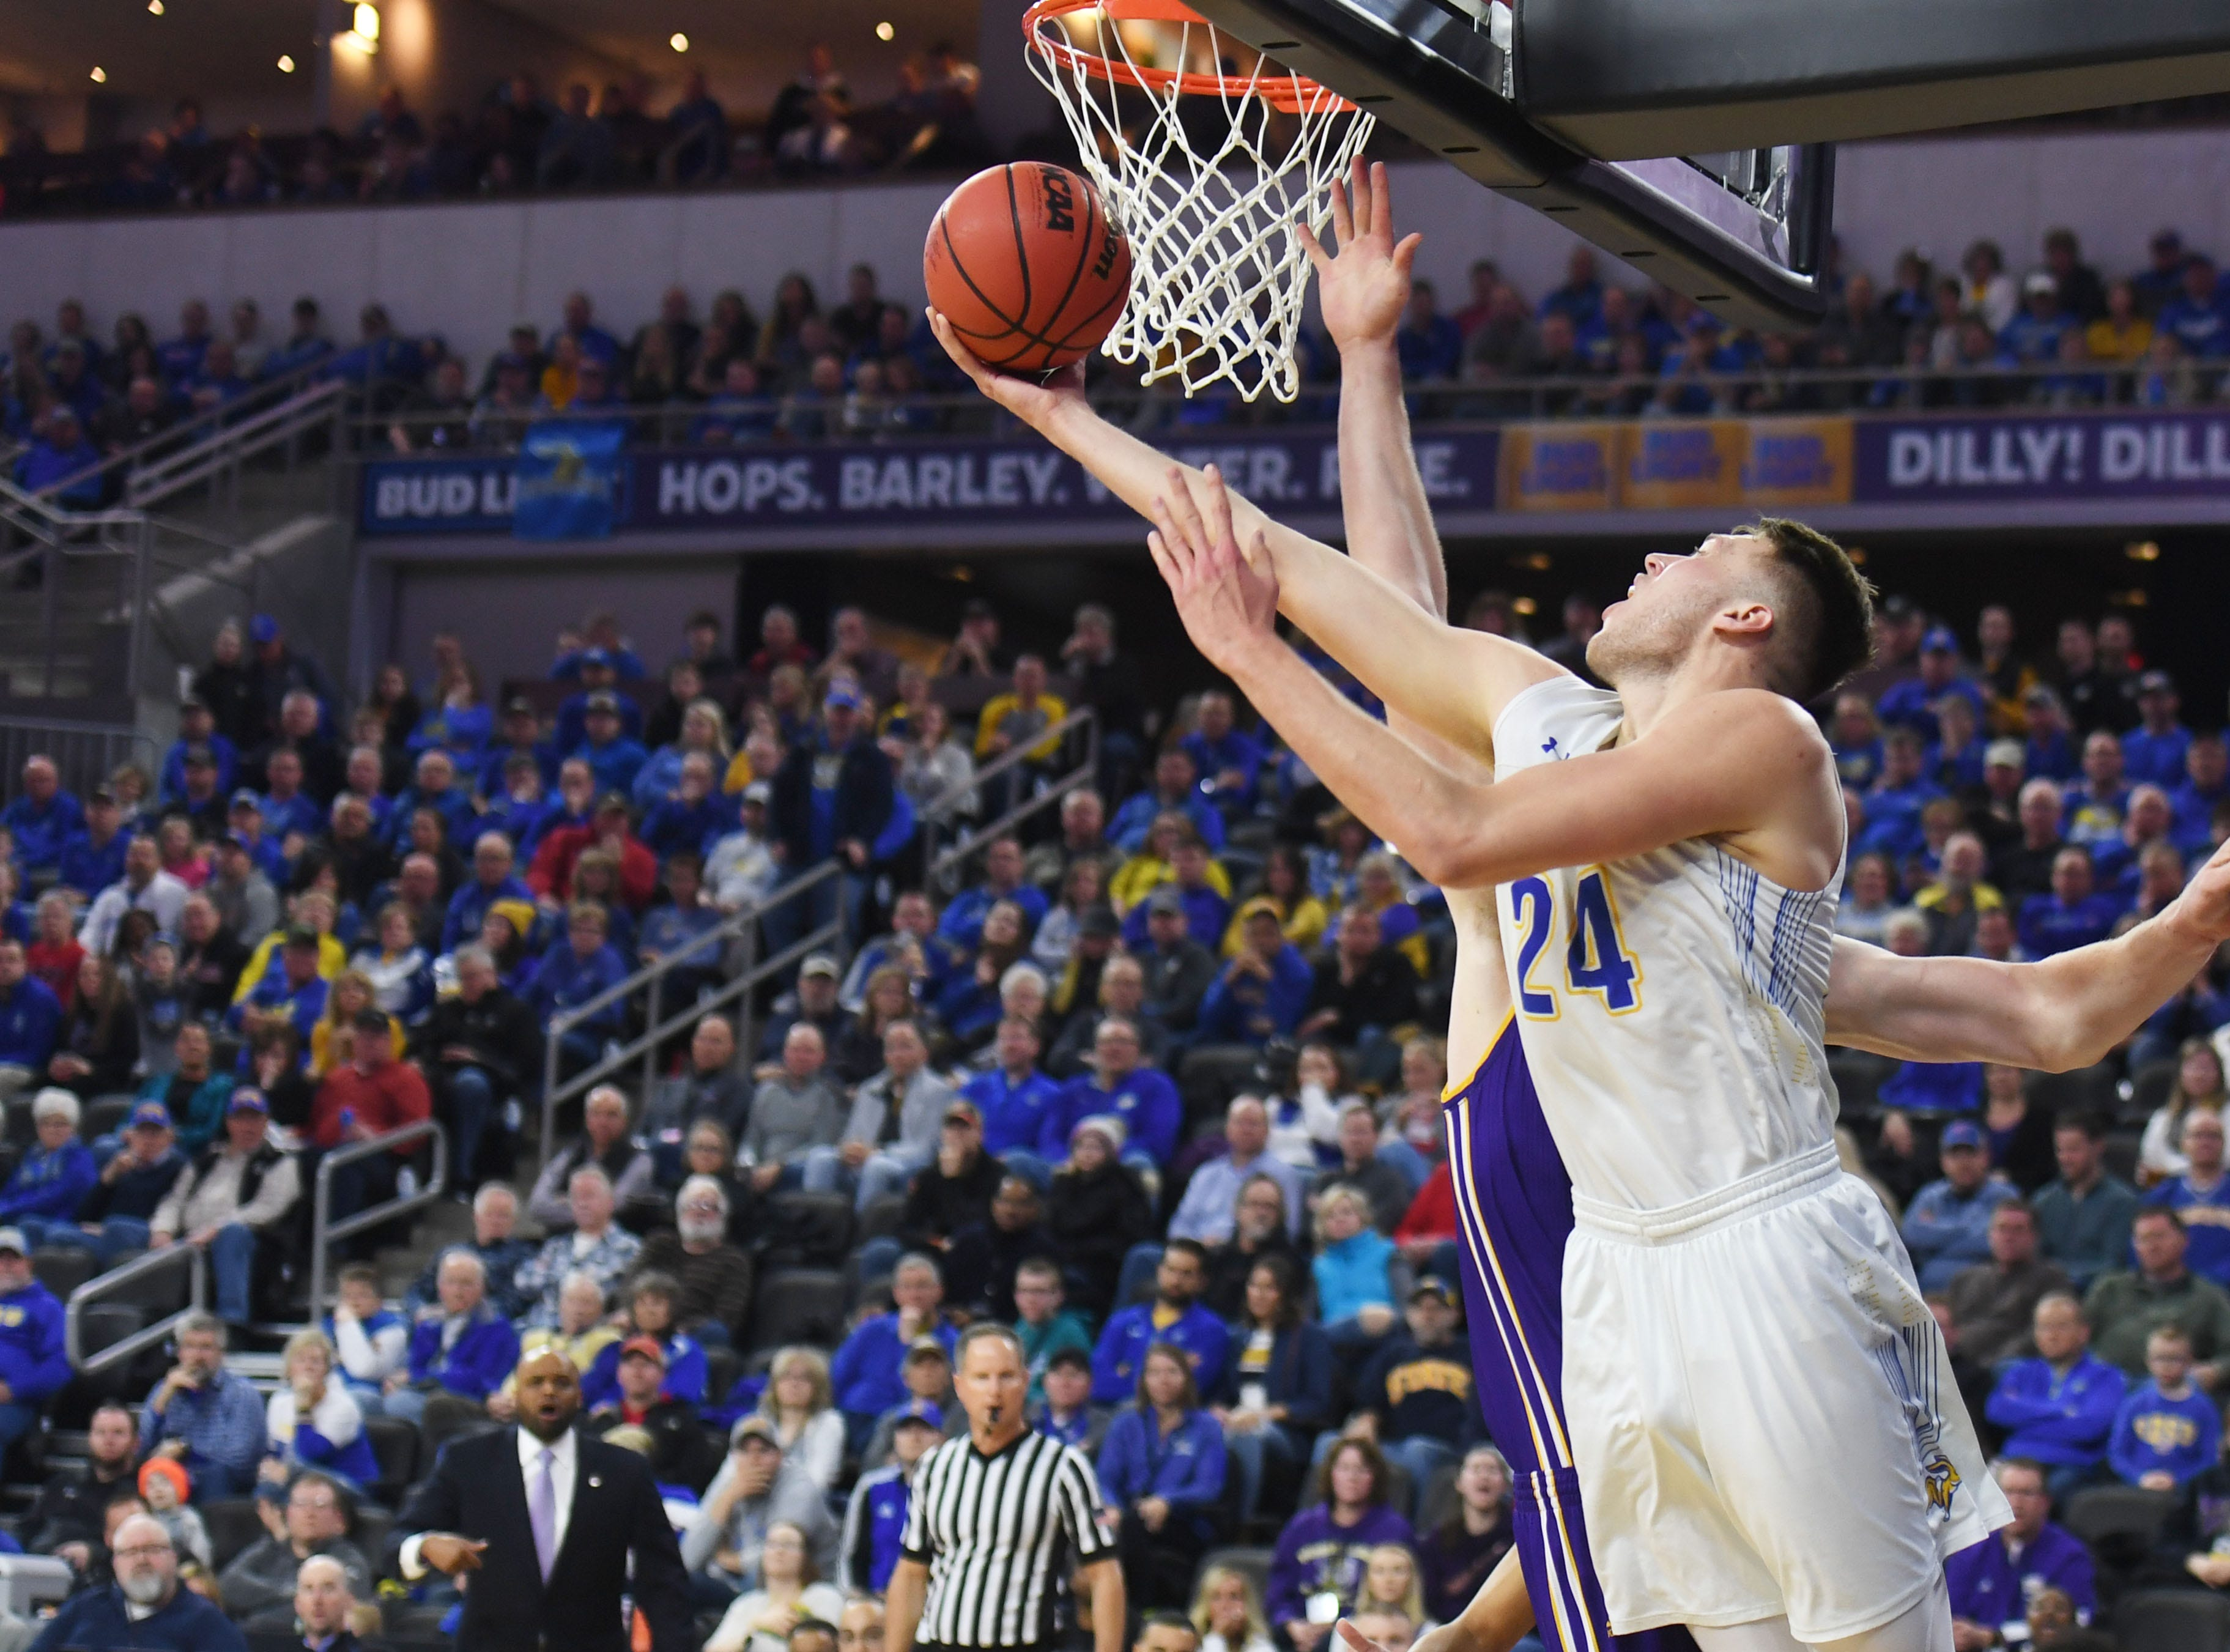 SDSU's Mike Daum attempts to score against Western Illinois during the game Saturday, March 9, in the Summit League tournament at the Denny Sanford Premier Center in Sioux Falls.